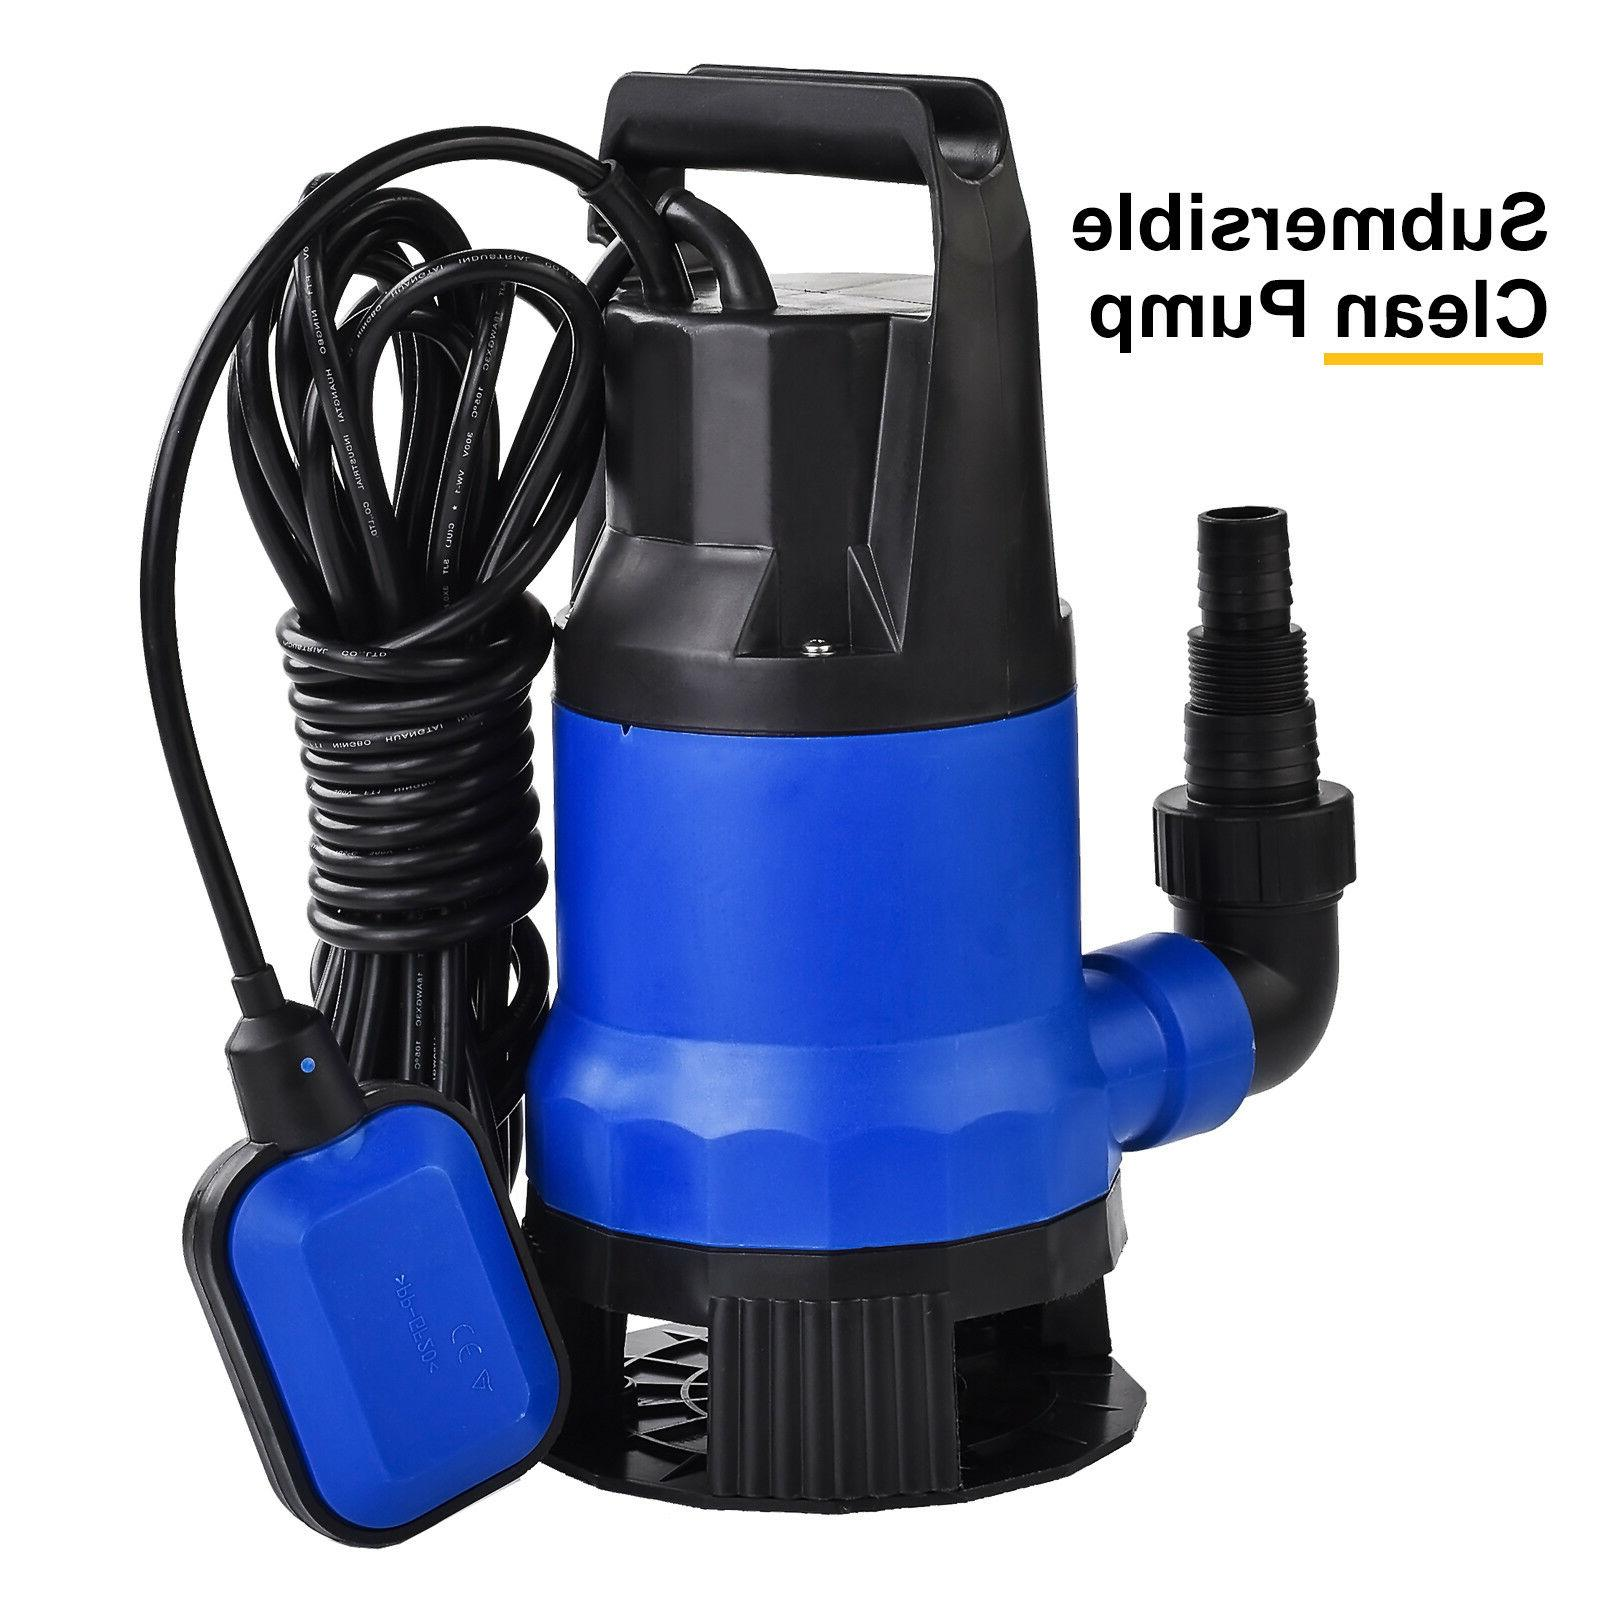 1HP Submersible Clean Swimming Pool Flood